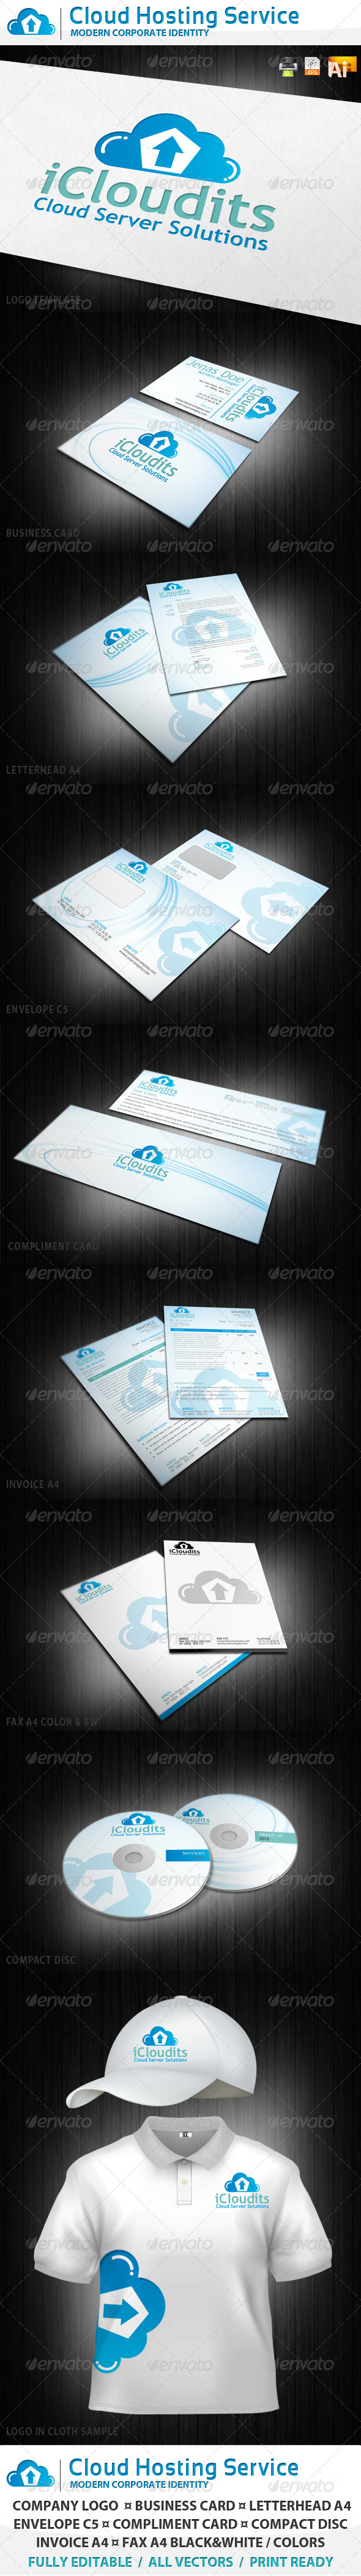 GraphicRiver Cloud Hosting Service Corporate Identity 1048494